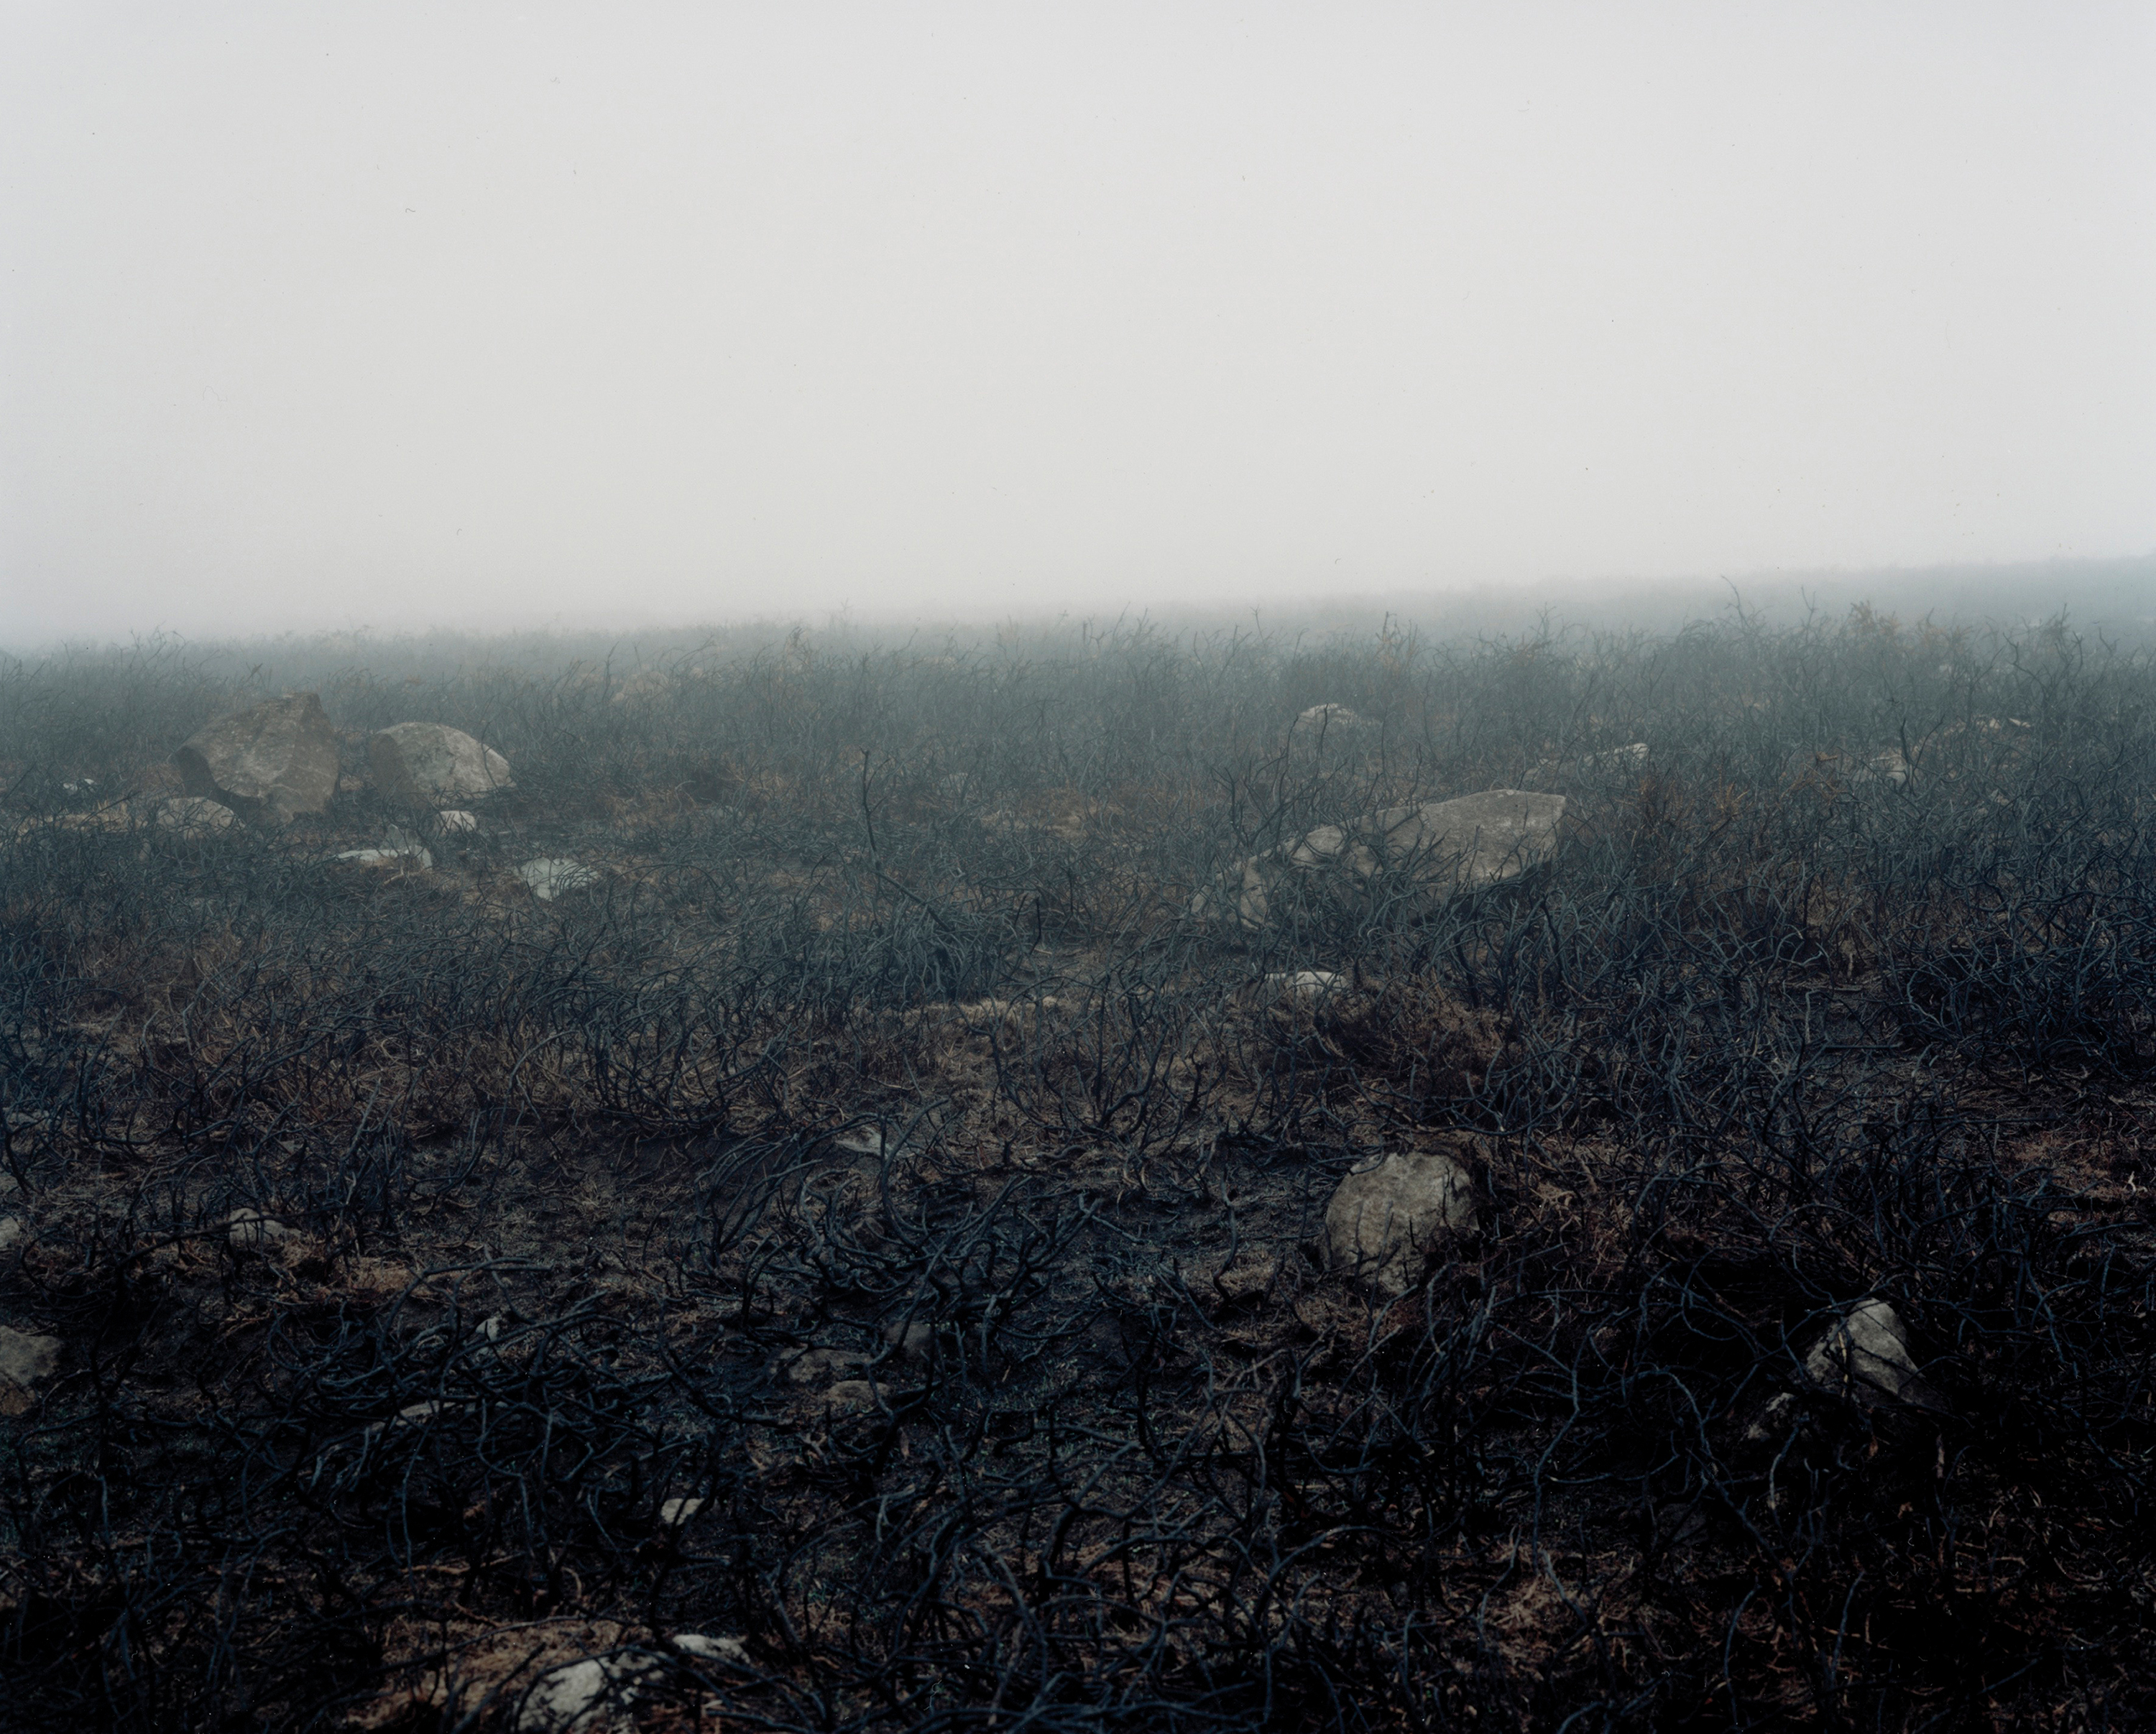 Photograph of an area of burnt gorse